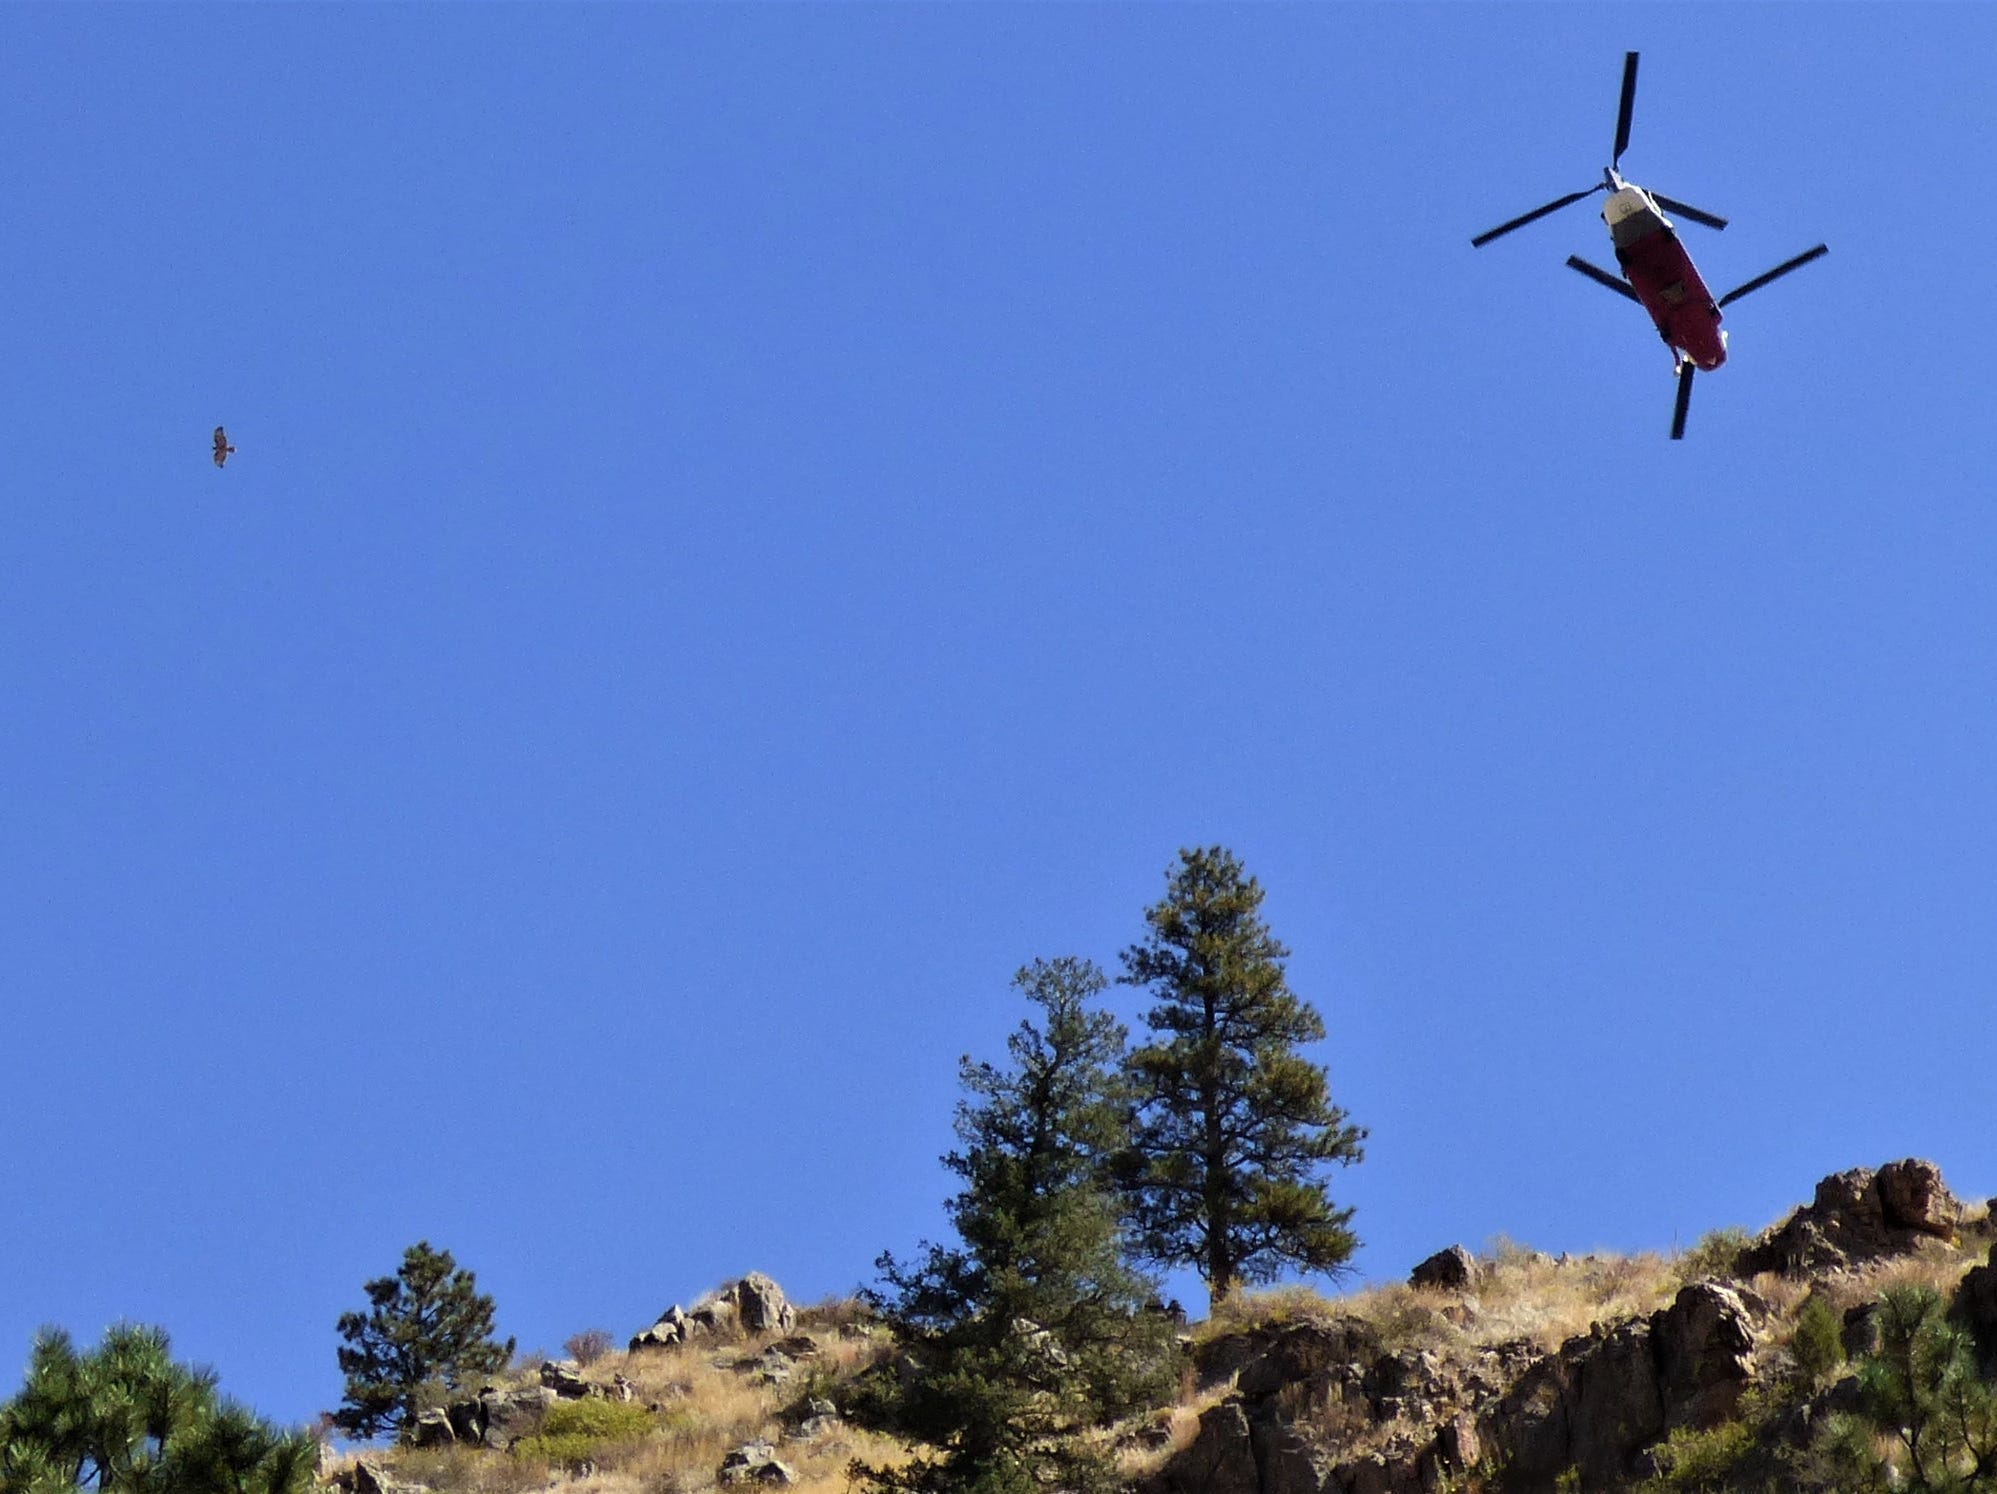 Reader Kristen Peterson, who lives near the Seaman Fire, provided this photo of a helicopter working the fire.